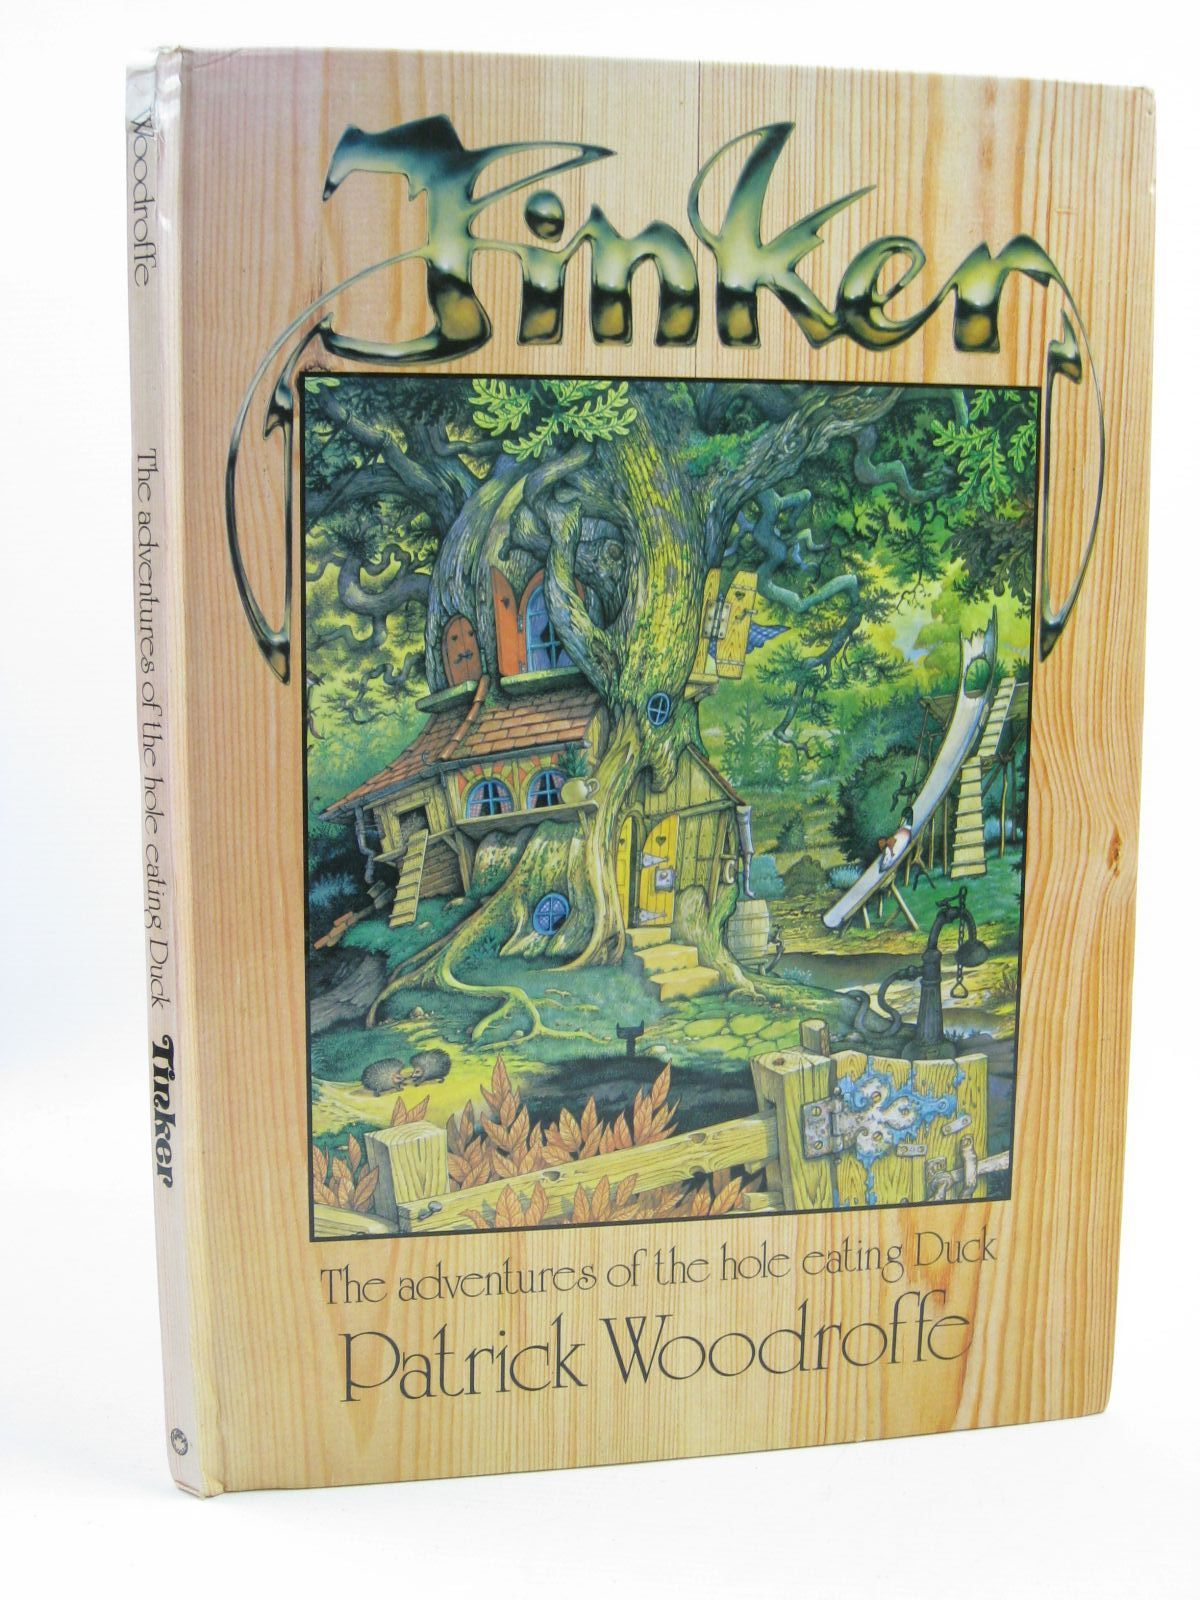 Photo of THE ADVENTURES OF TINKER THE HOLE-EATING DUCK written by Woodroffe, Patrick illustrated by Woodroffe, Patrick published by Dragon's World (STOCK CODE: 1406752)  for sale by Stella & Rose's Books